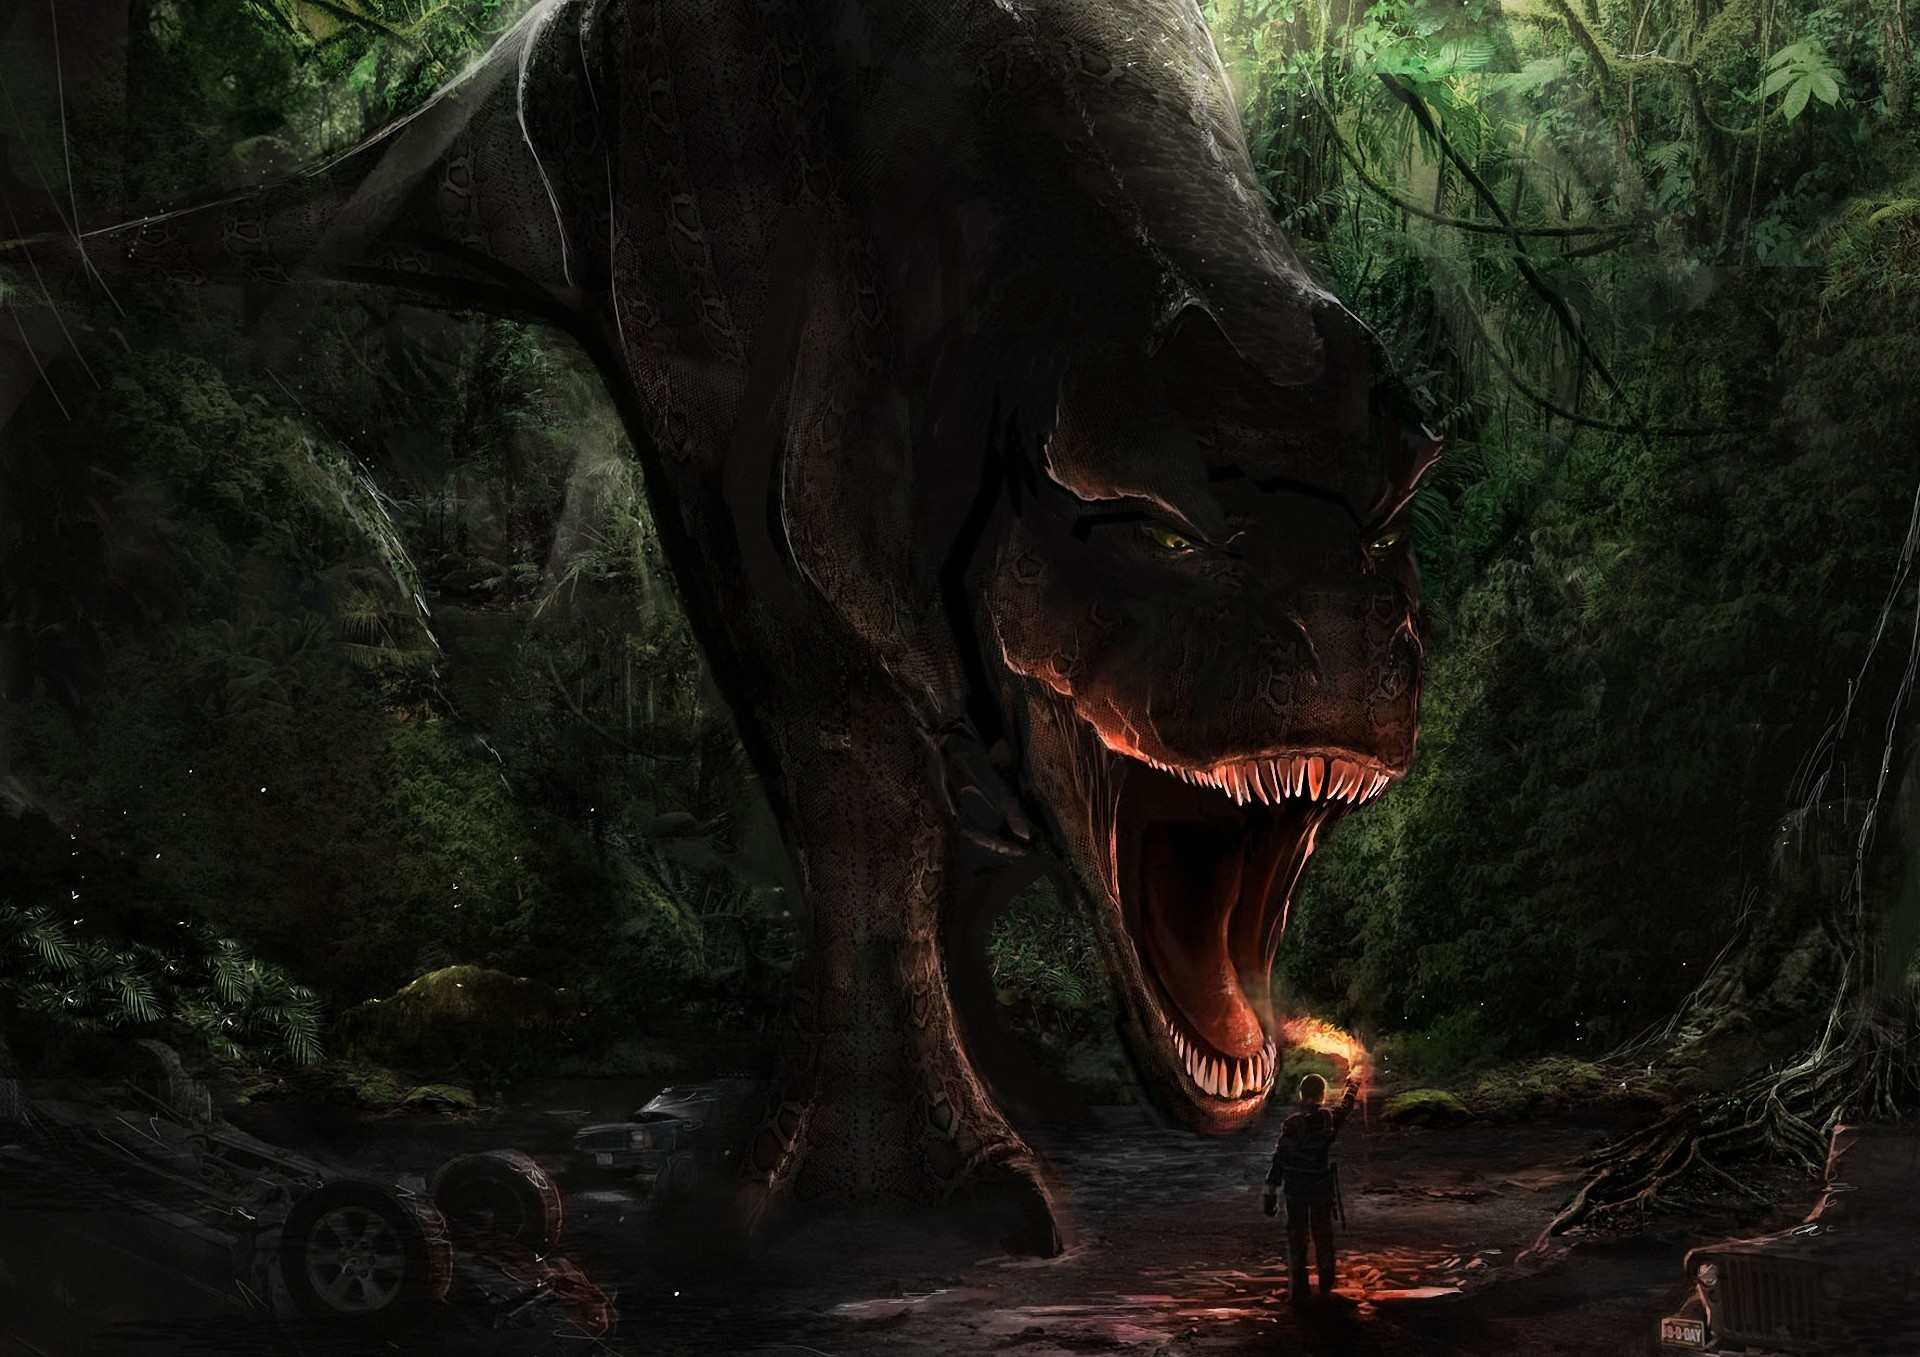 1920x1357 Forest Man T-rex Danger Art Jaws A Torch A Dinosaur Dark Monster Wallpaper  At Fantasy Wallpapers